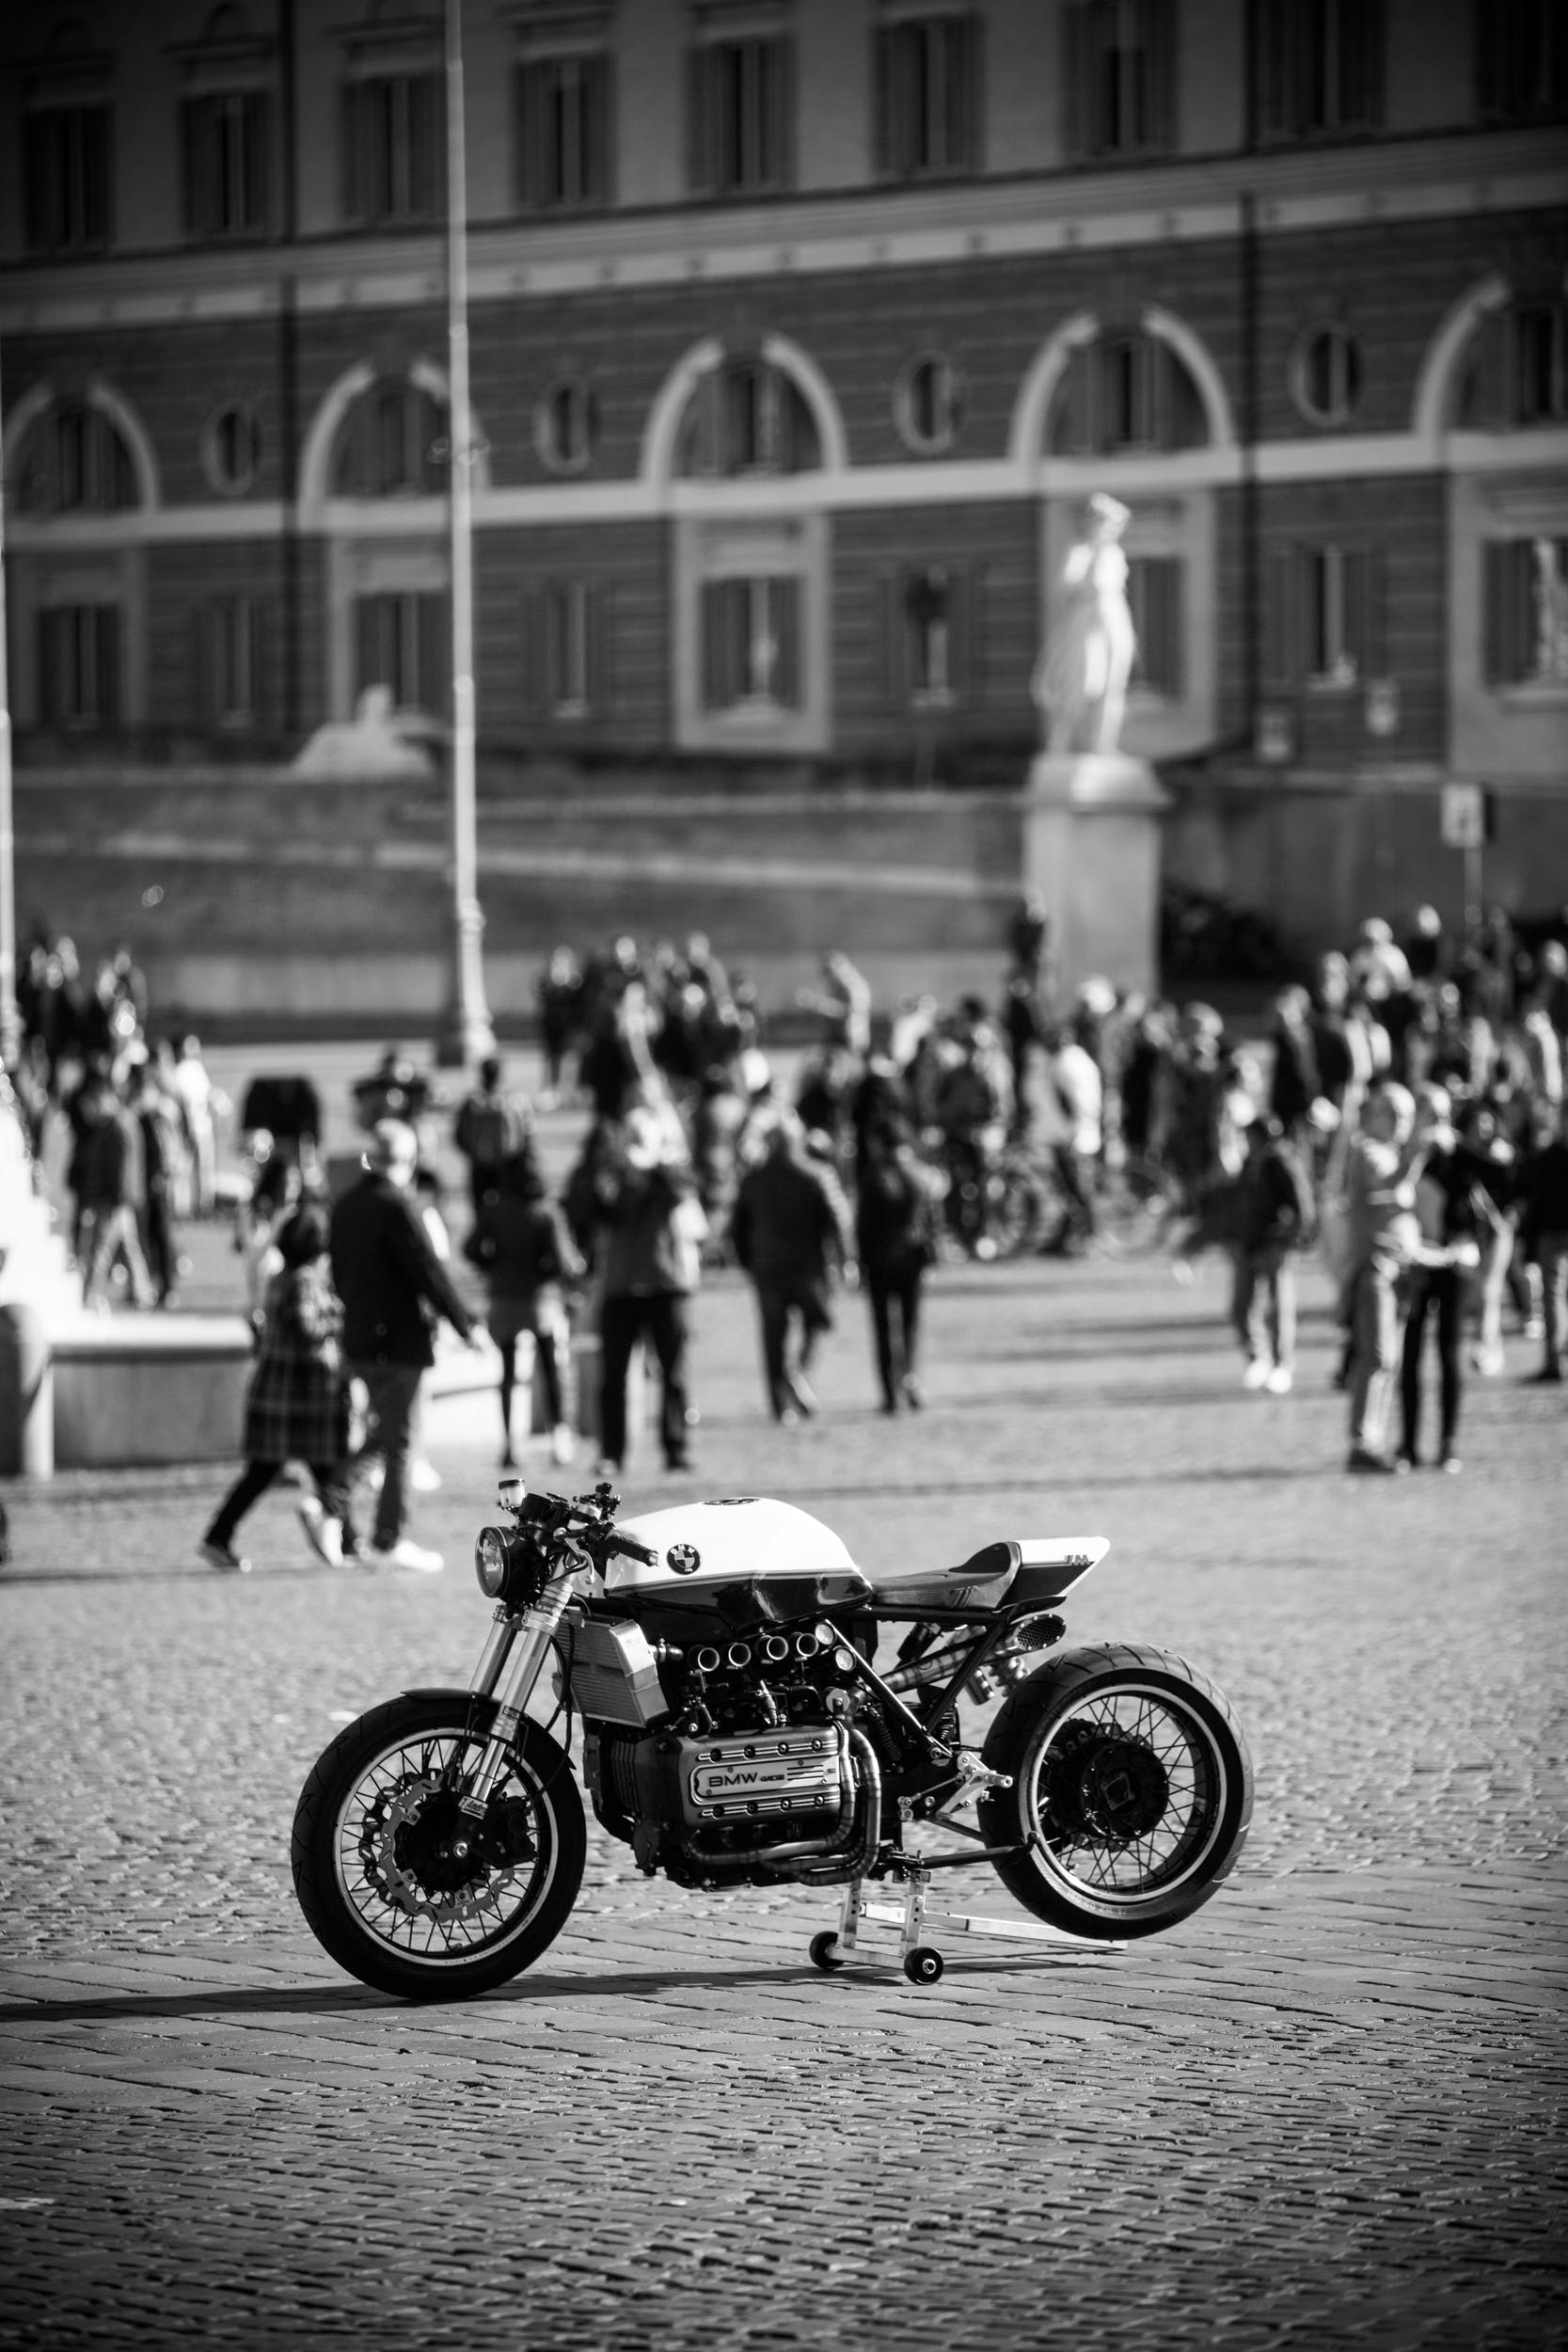 Grayscale Photo of Sports Bike Parked Near People